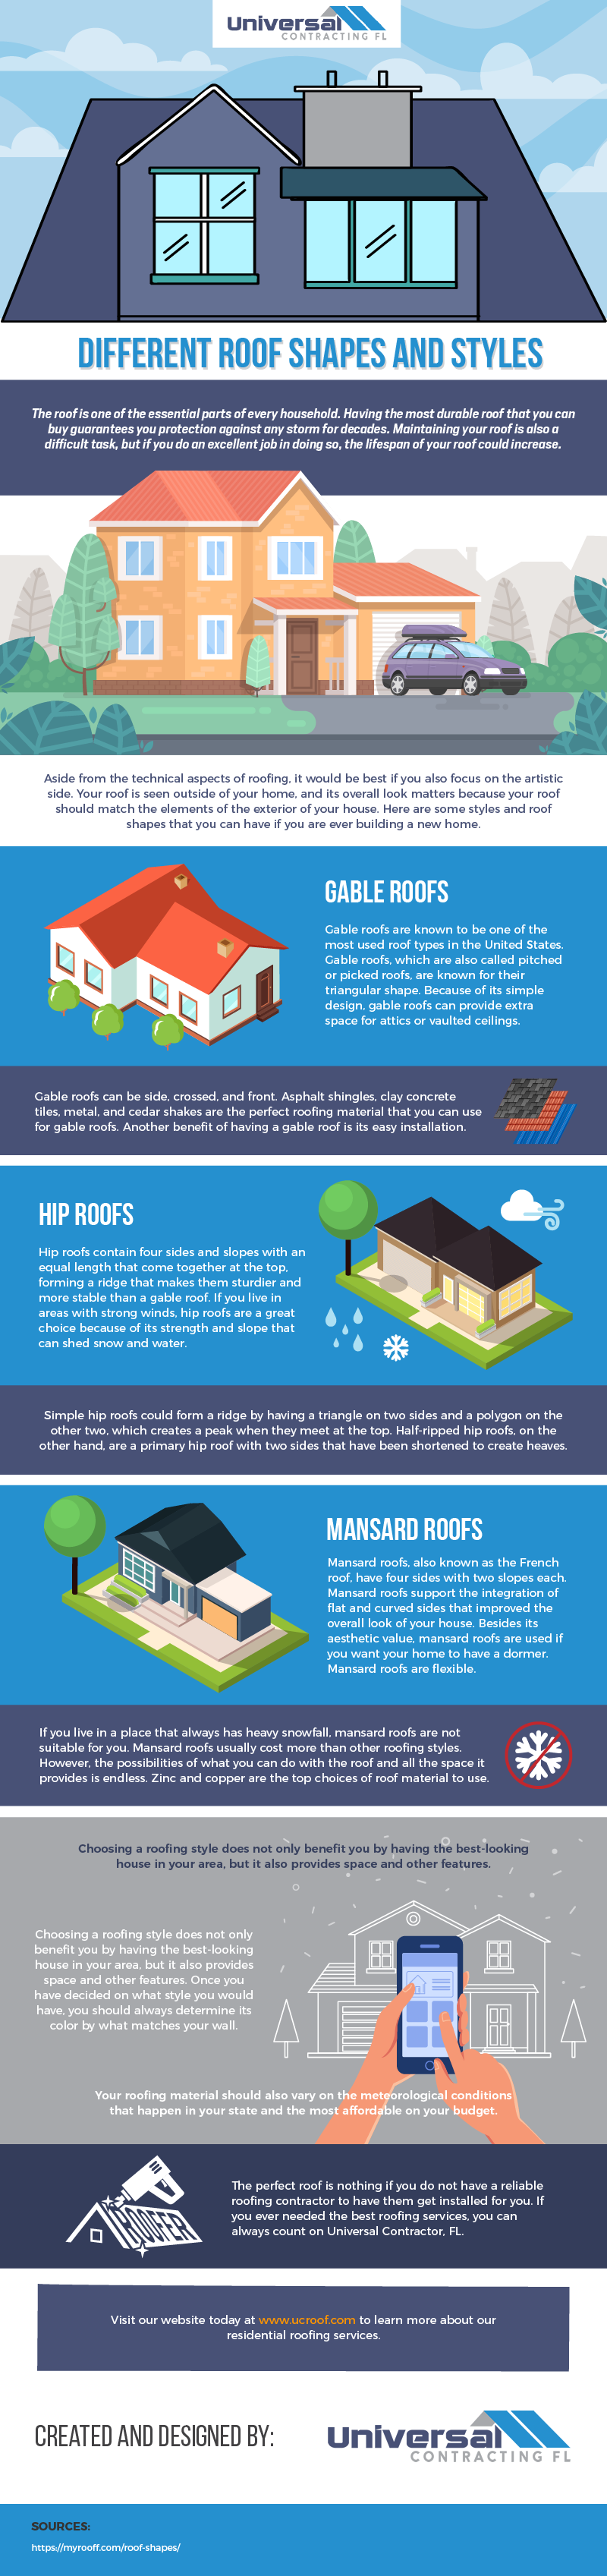 Different Roof Shapes and Styles - Infographic